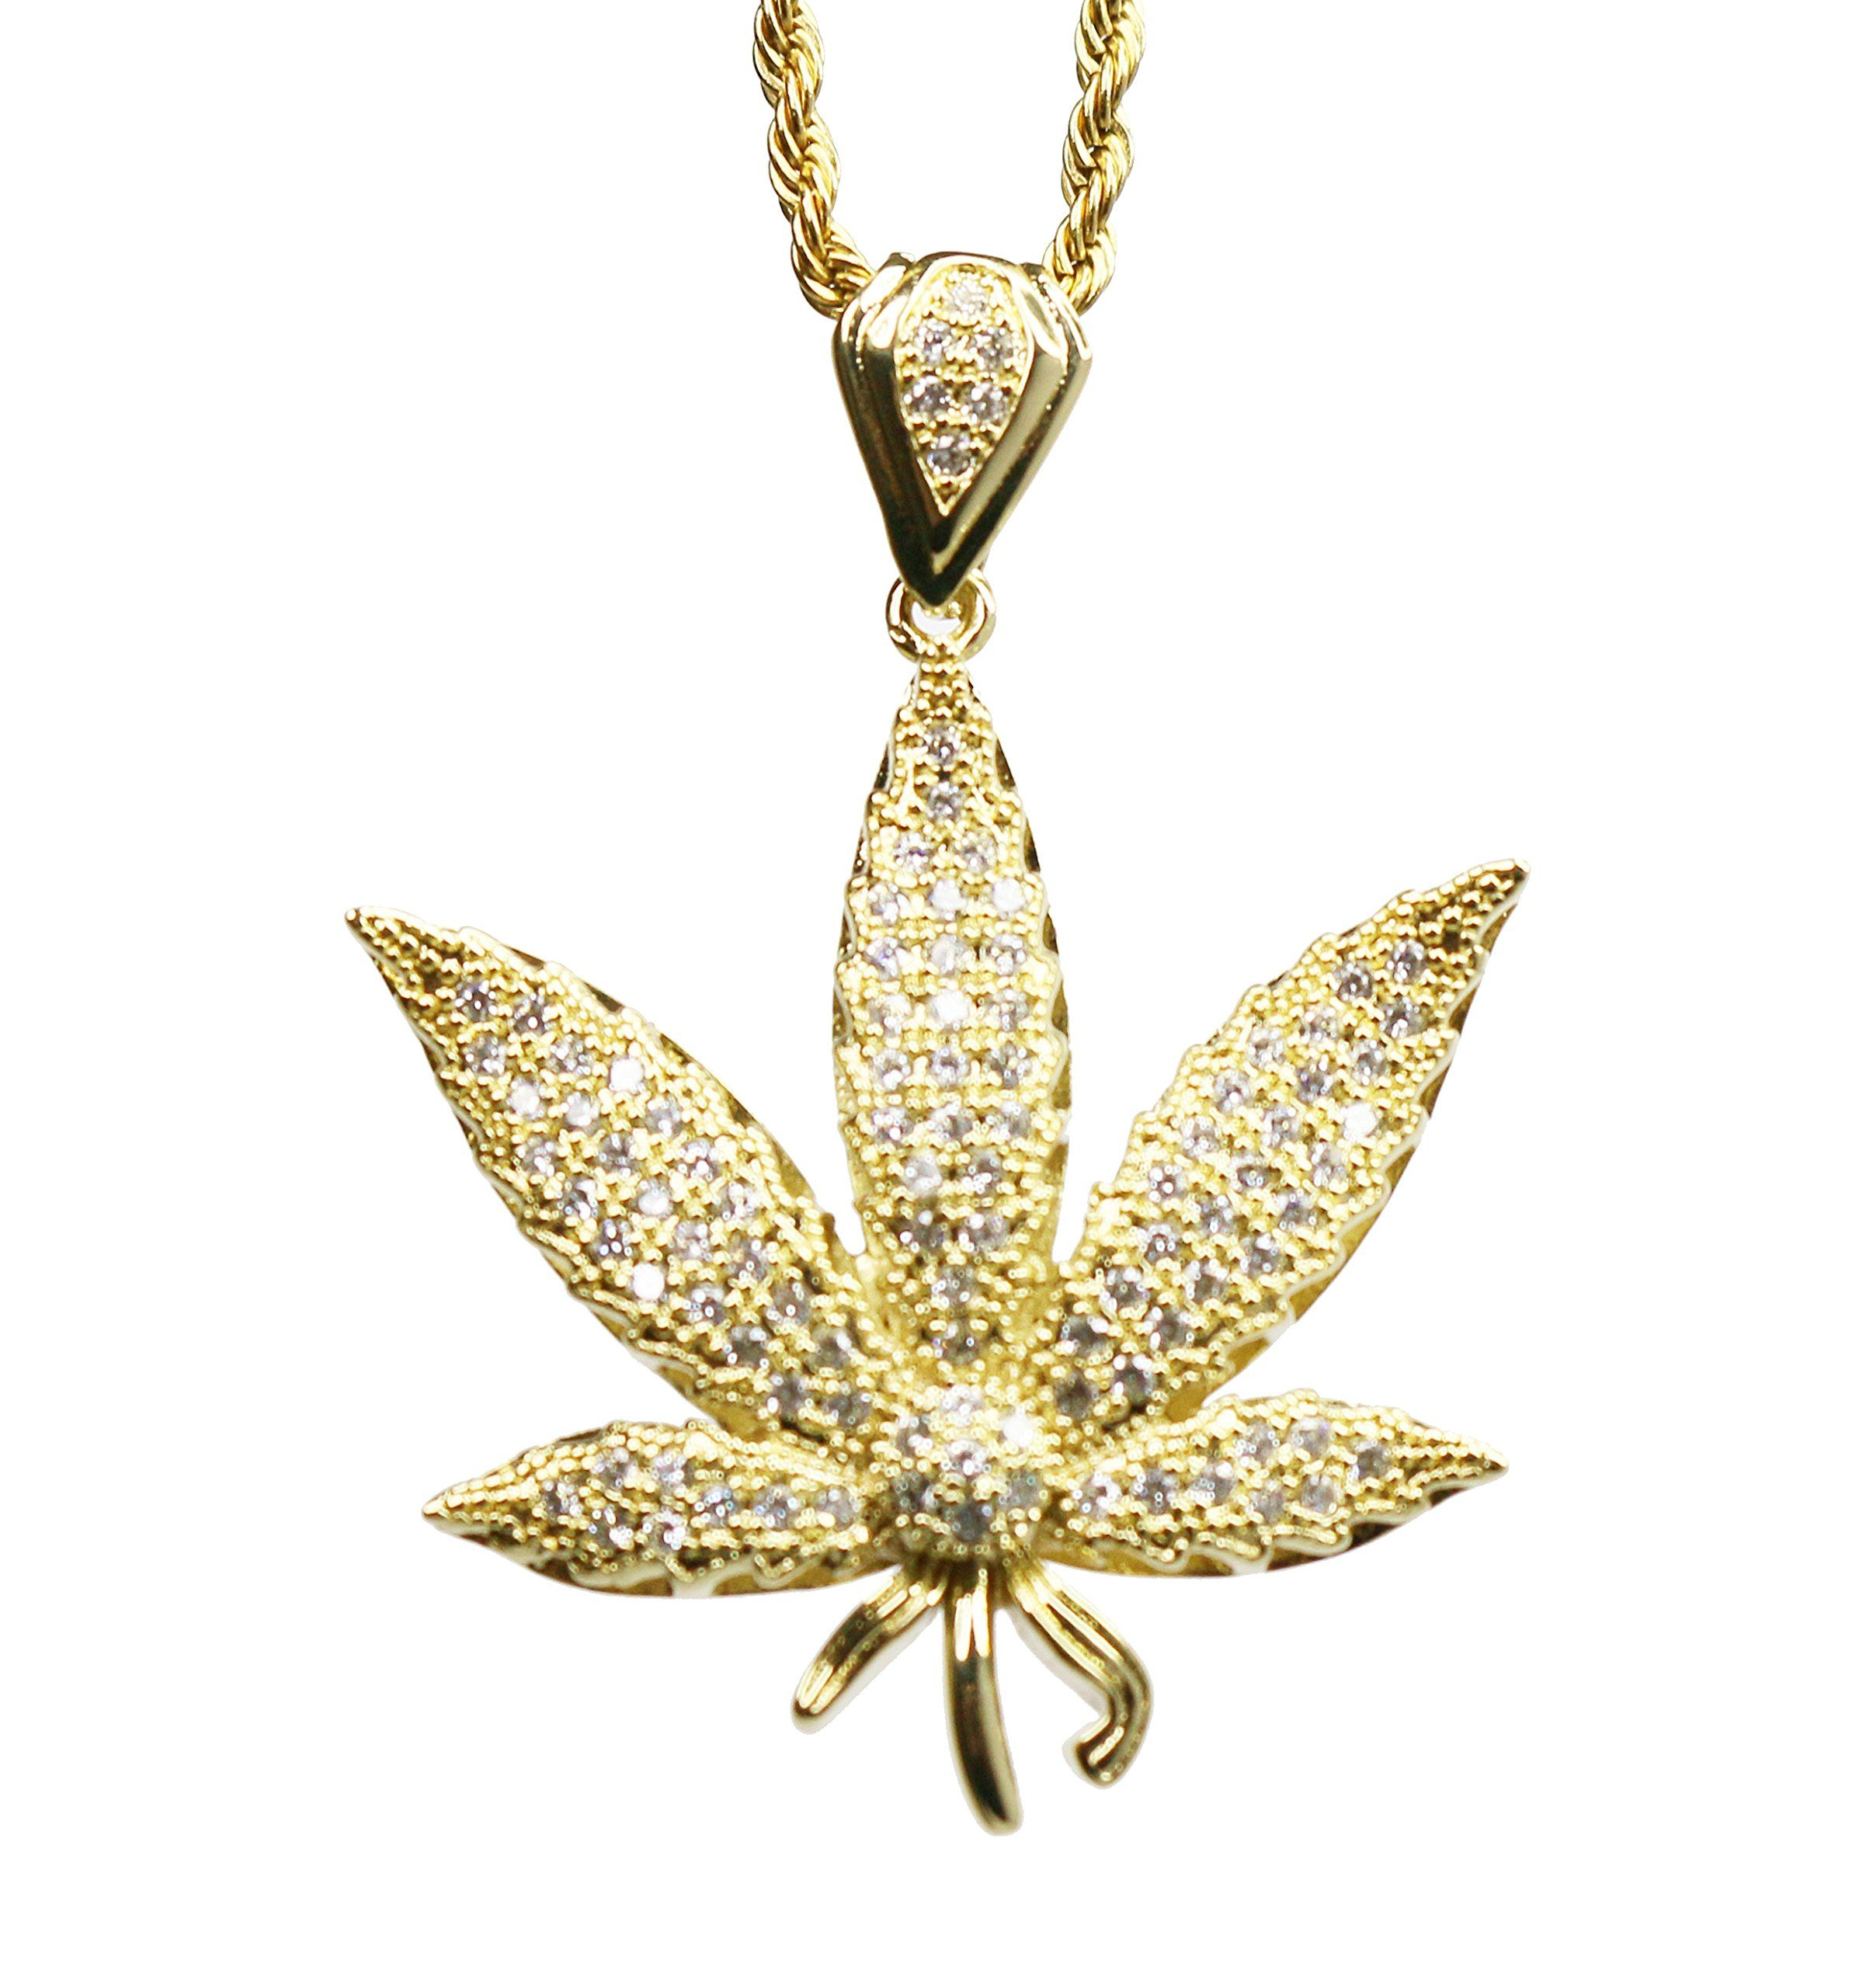 Marijuana Iced Out Gold Pot Weed Leaf Pendant 420 Charm 24 in Rope Chain Hip Hop Necklace. 14k Gold Plated. 24 Inch Rope Chain.